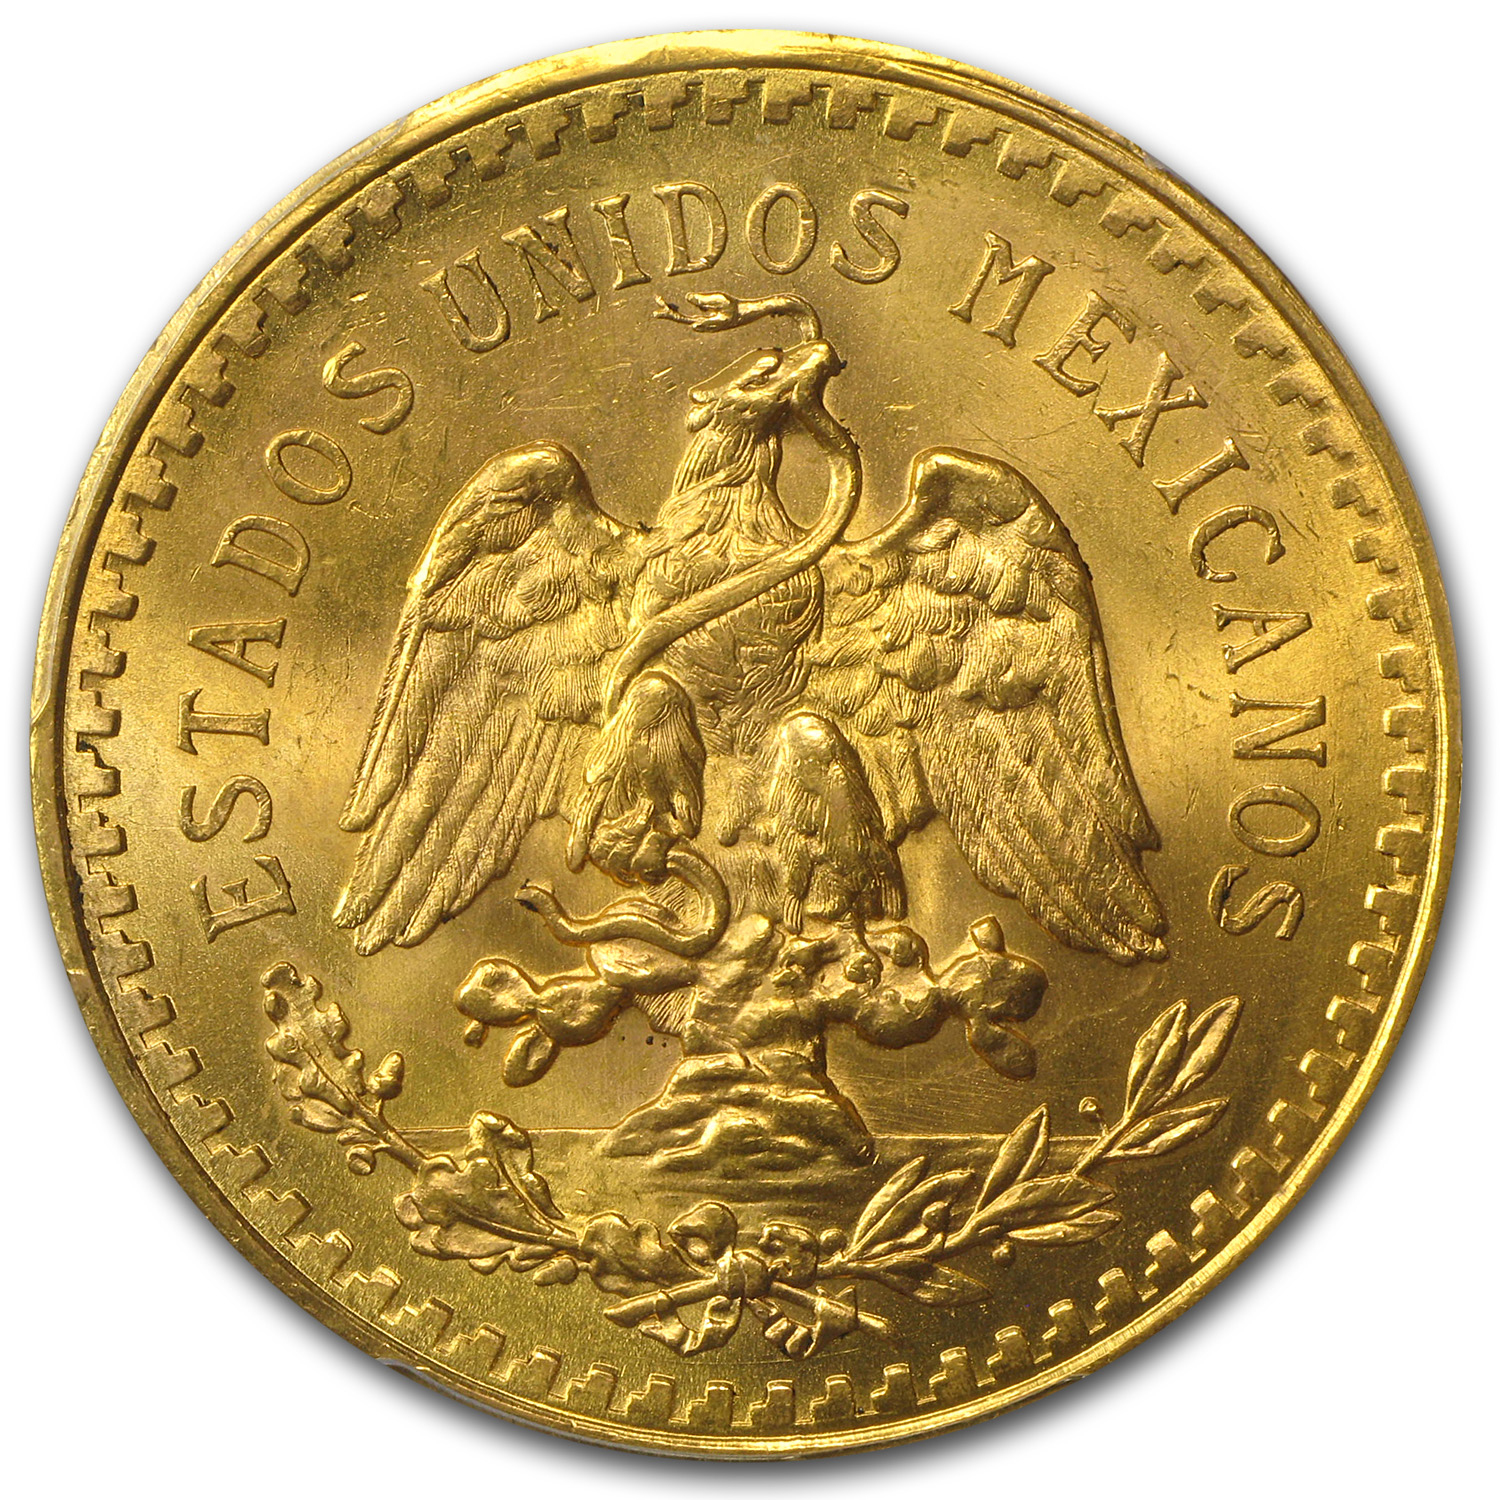 Mexico 1946 50 Pesos Gold Coin - MS-65 PCGS (Secure Plus)